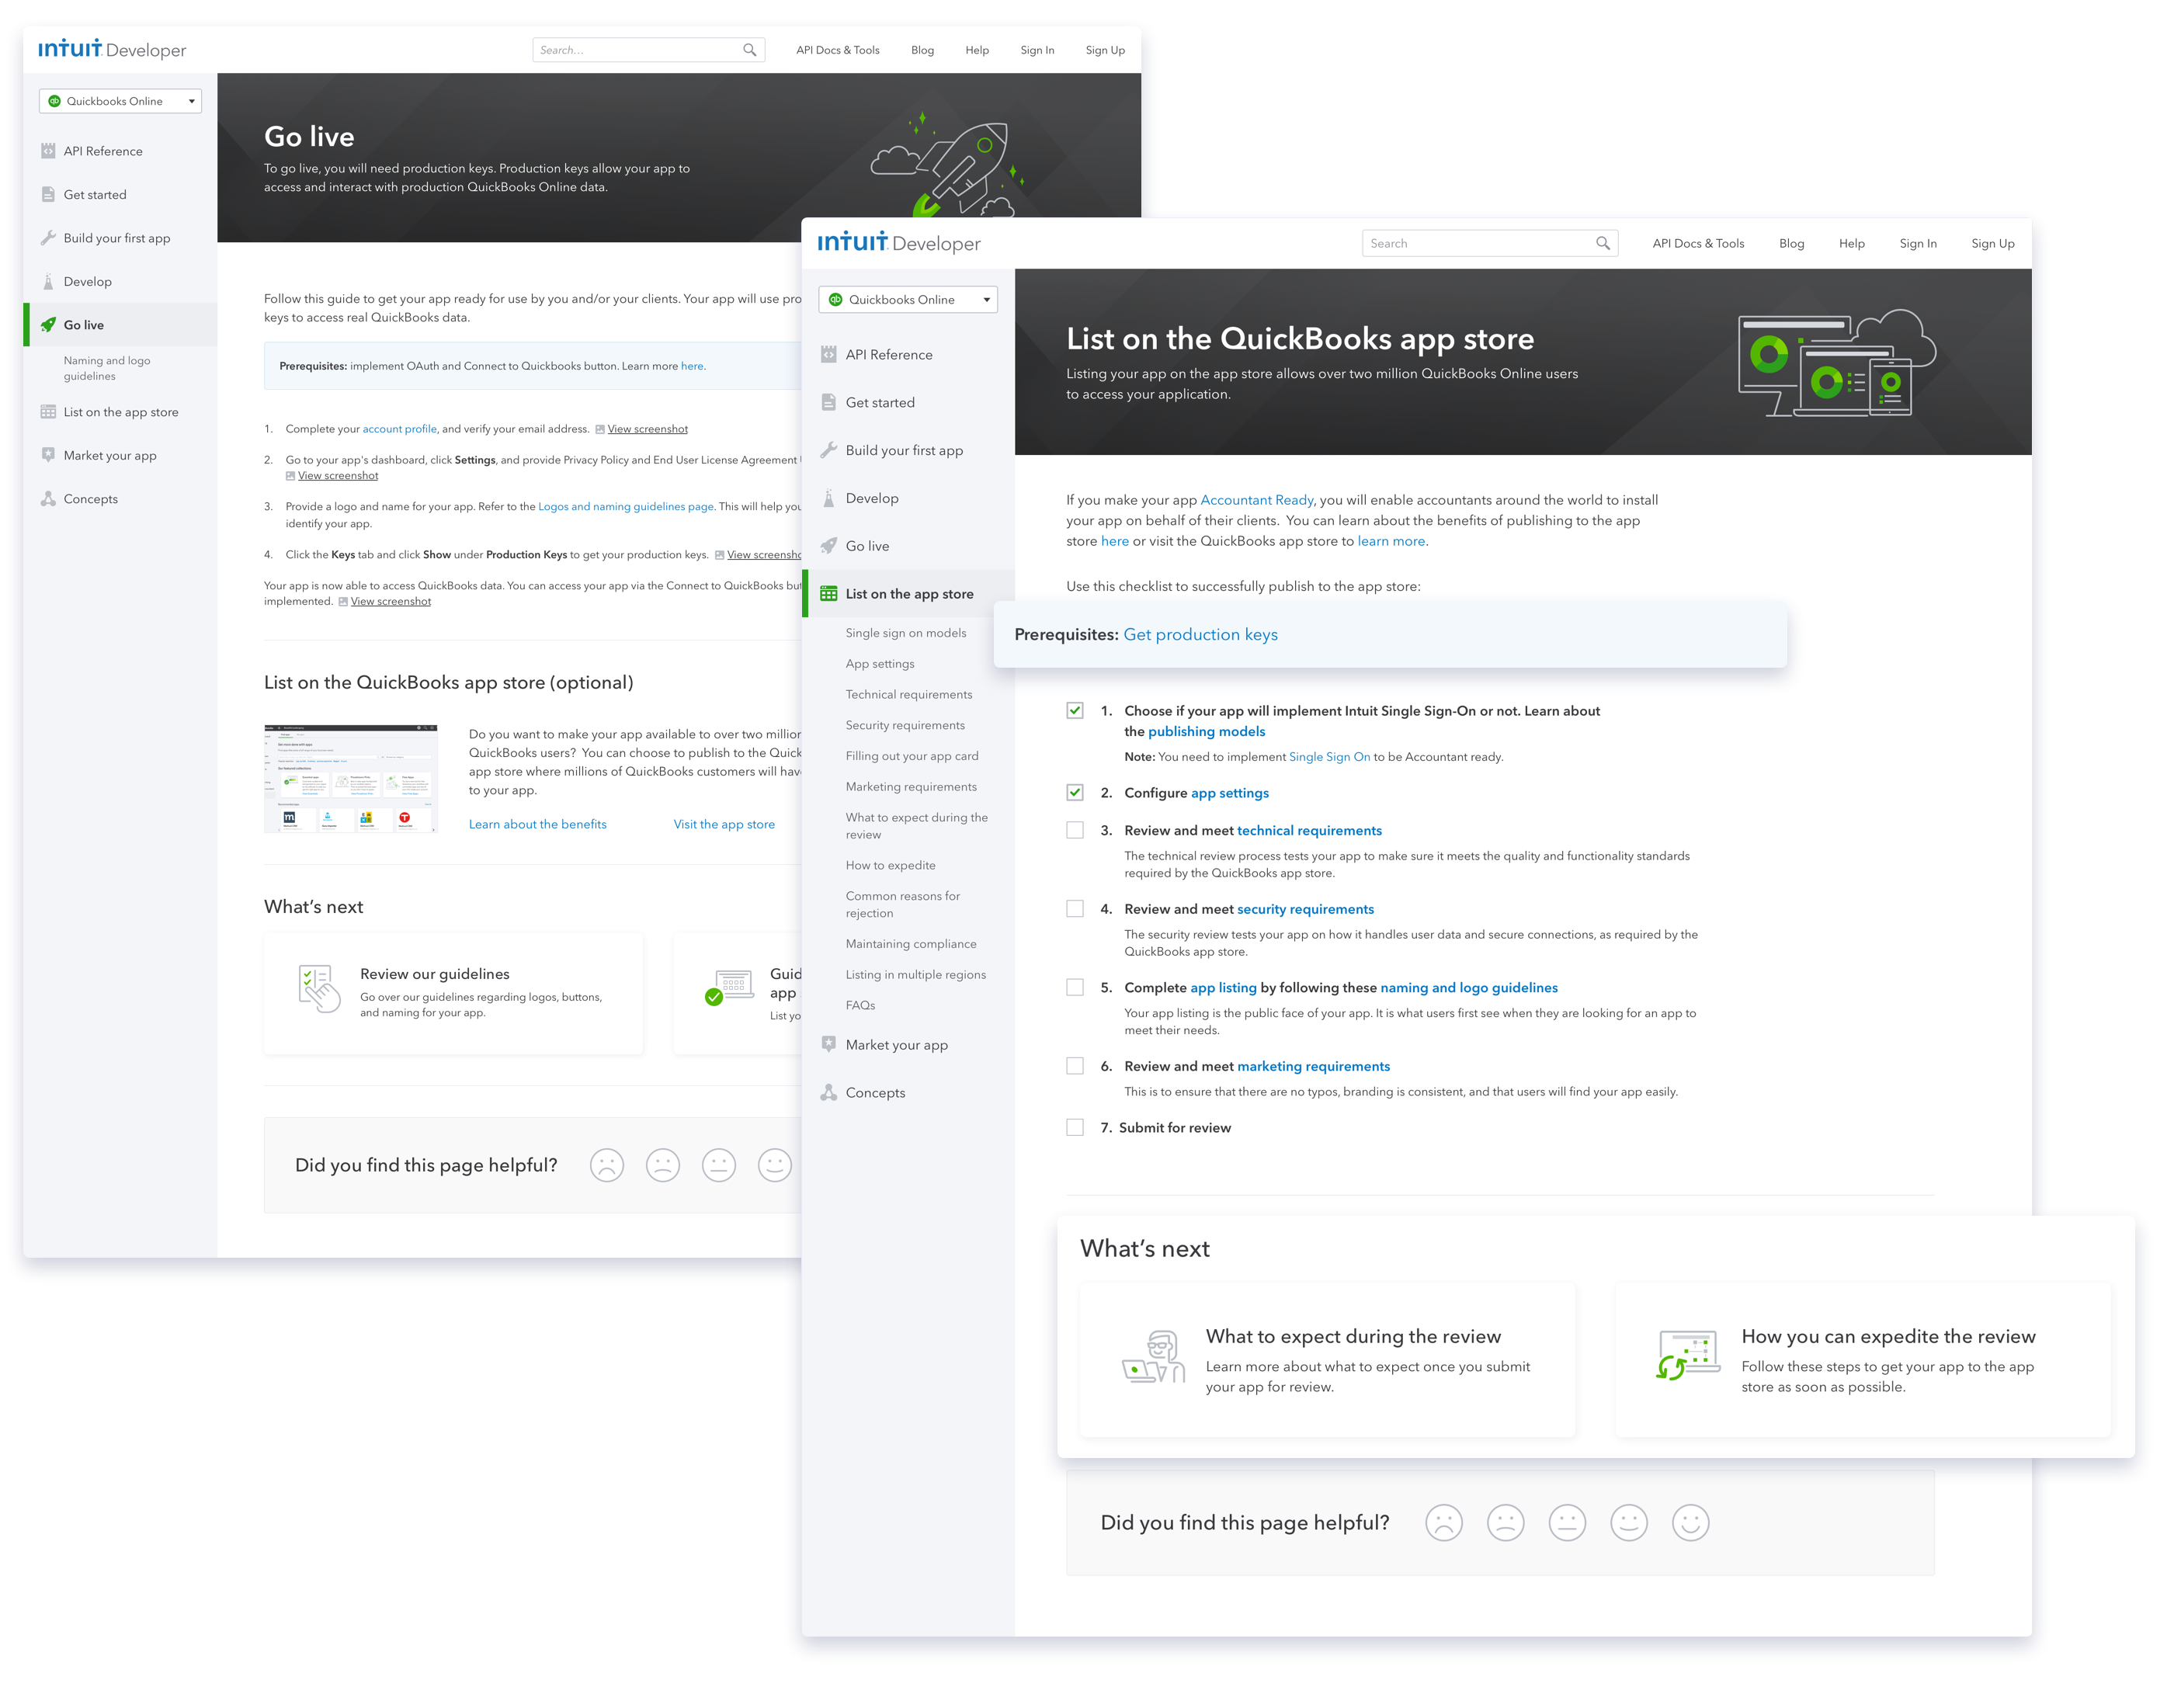 New Go-Live page and List your app on the QuickBooks store page with guidance for next step on each page